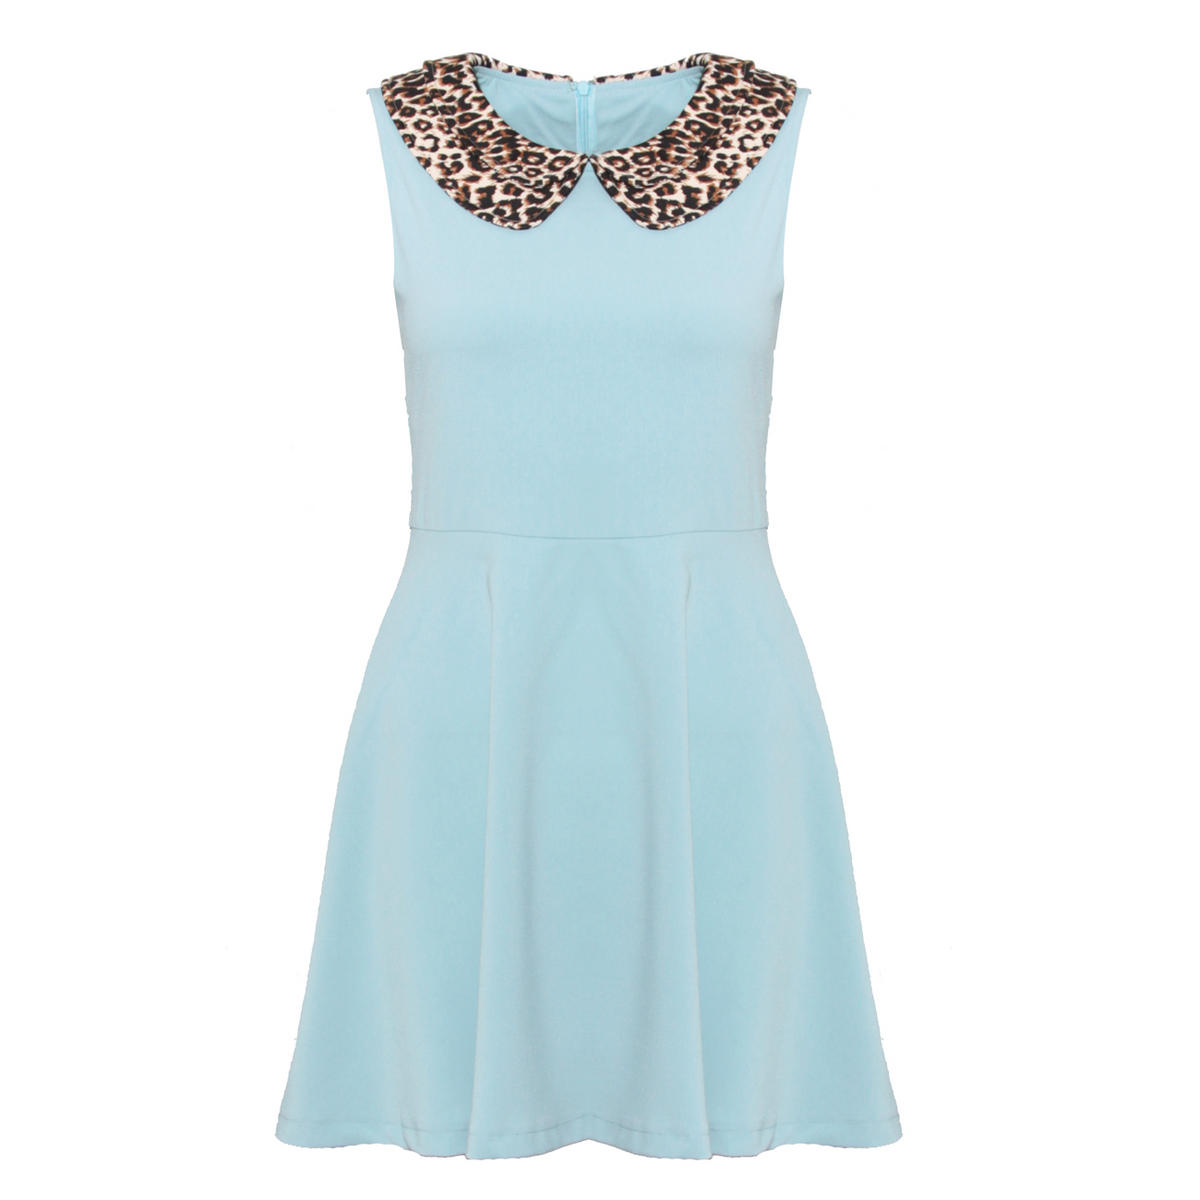 Leopard Print Peter Pan Collar Blue Dress Preview